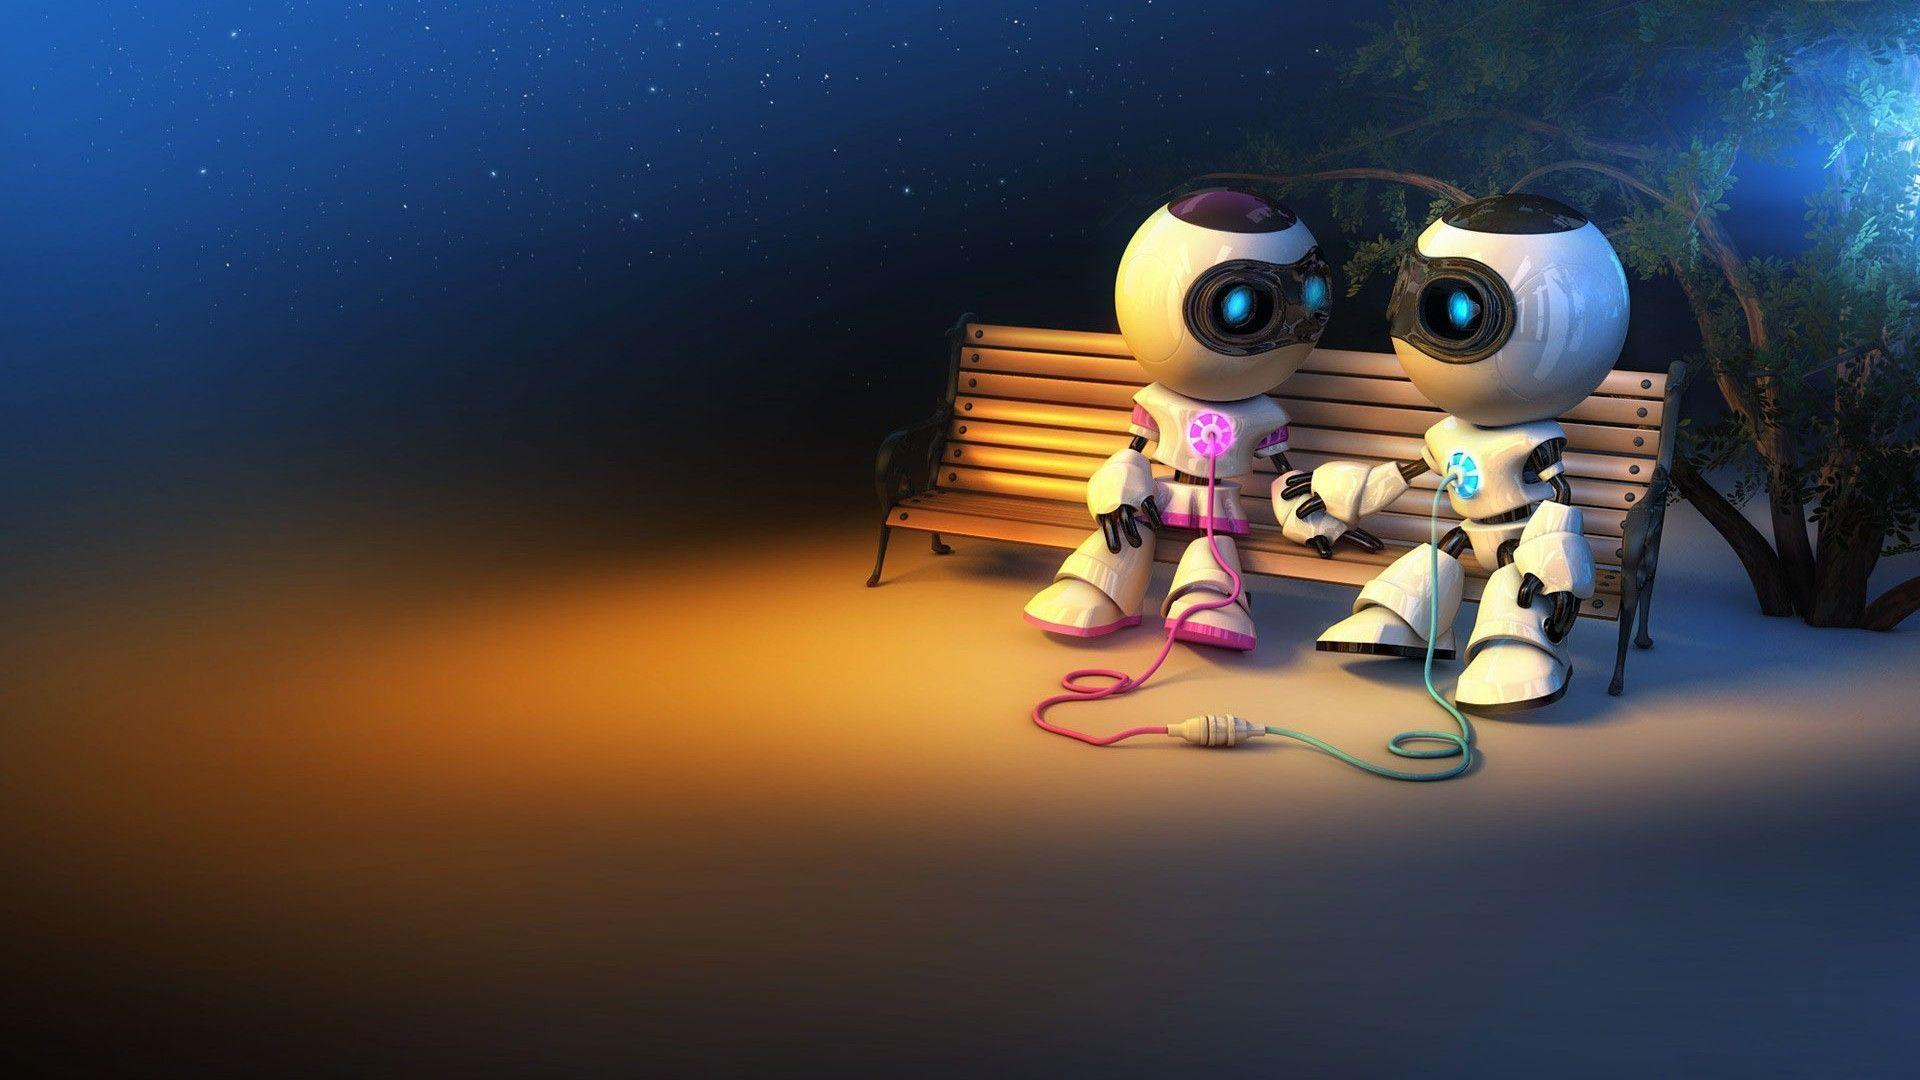 Cute Robot Love Wallpaper Cute Robot Wallpapers ...